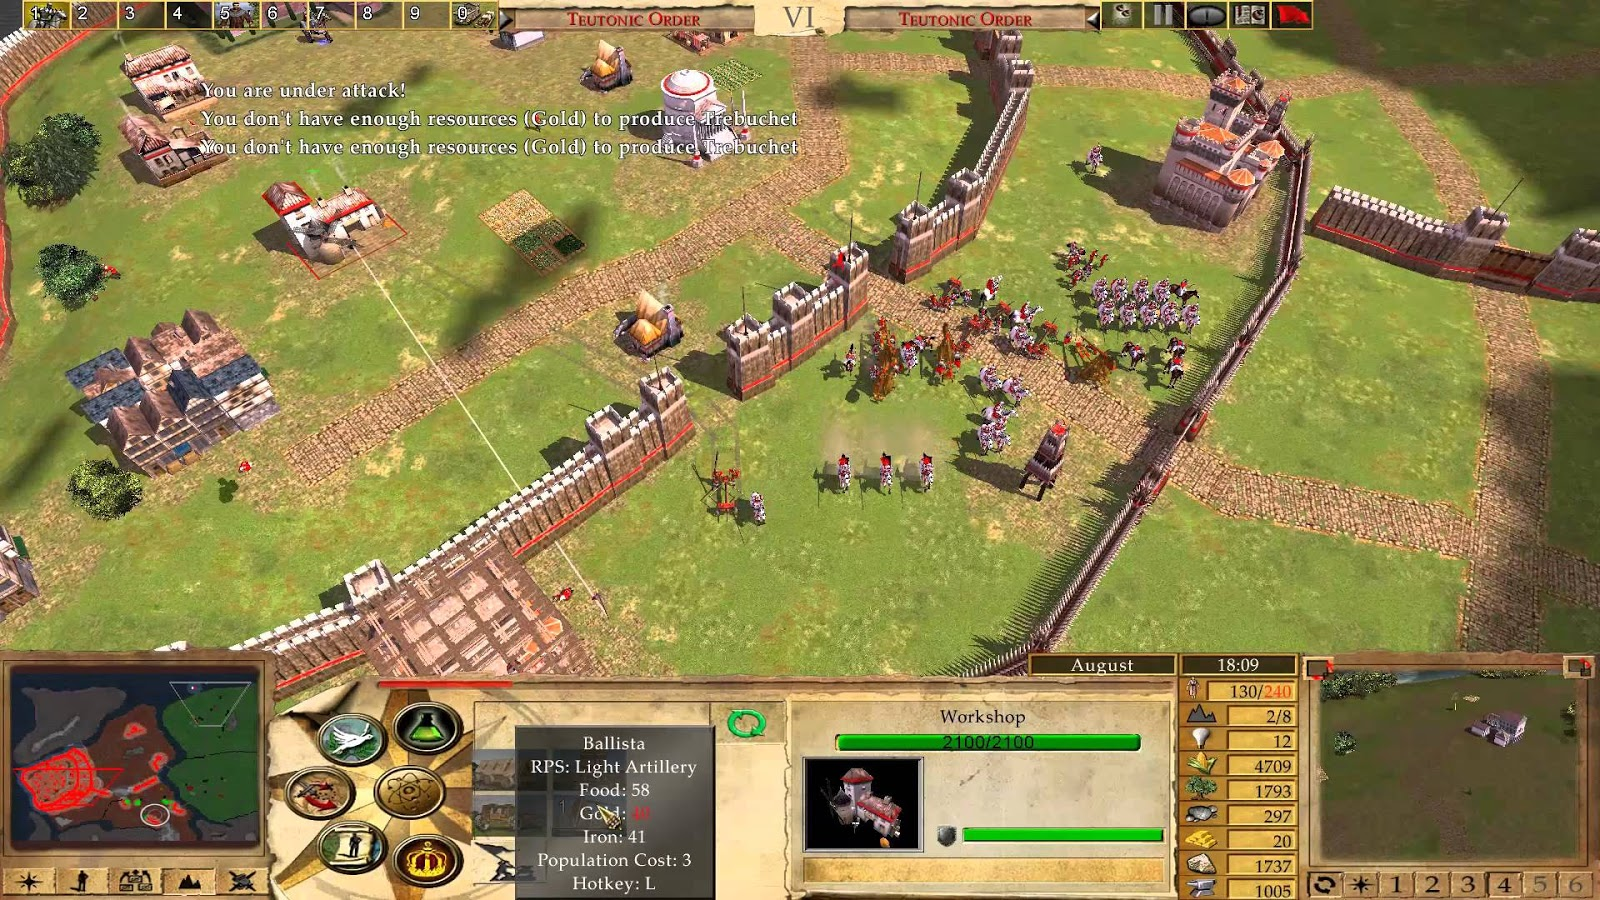 Download game empire earth ii.